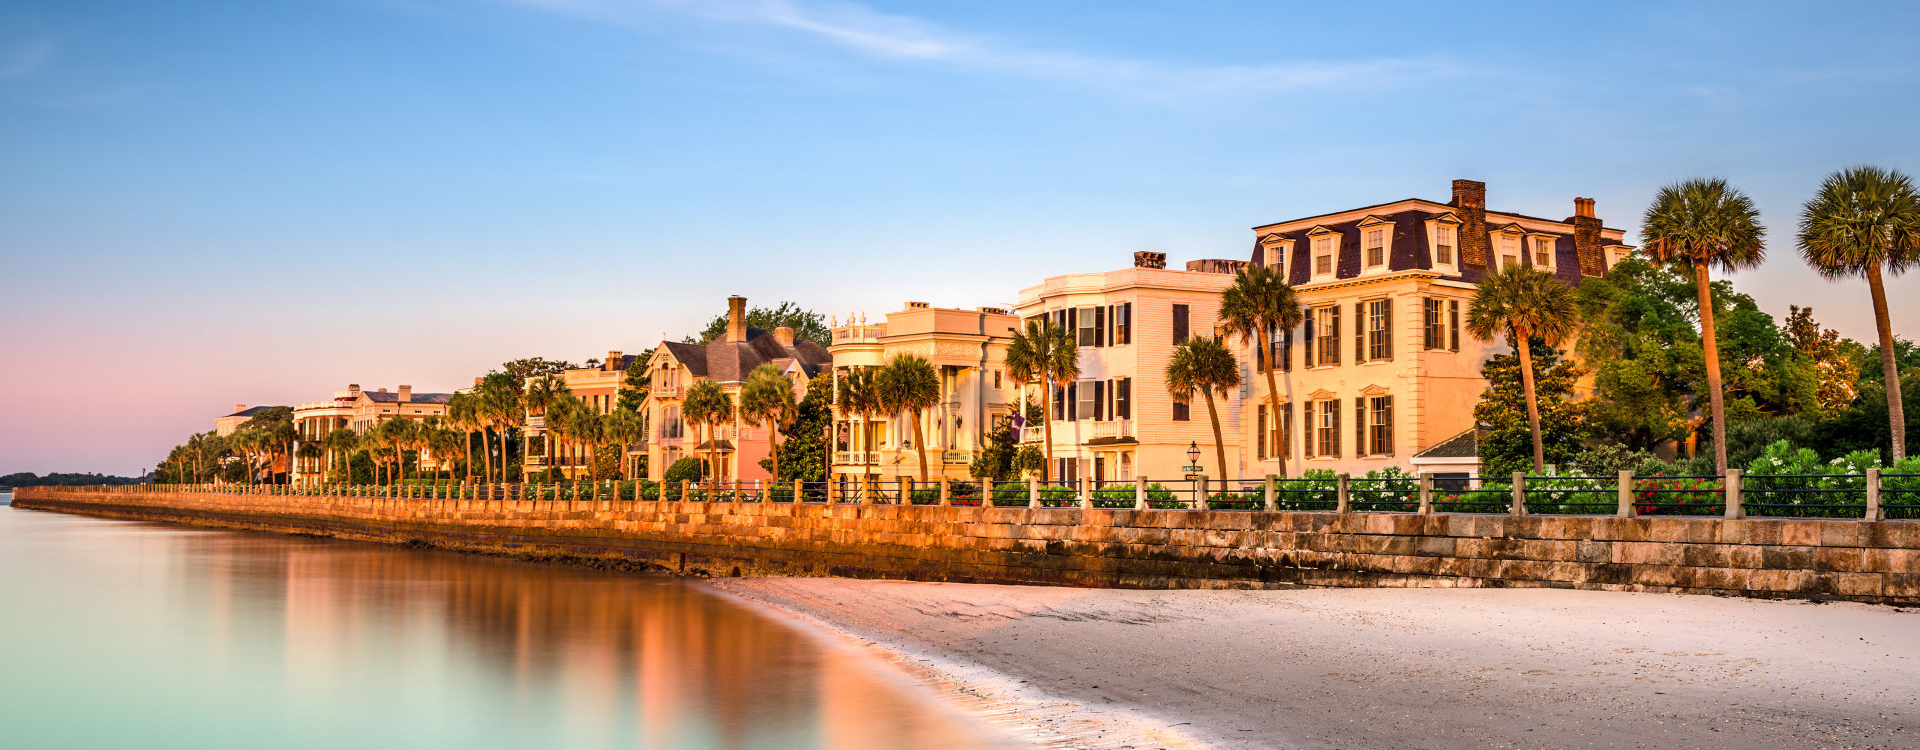 homes for sale in historic charleston, sc